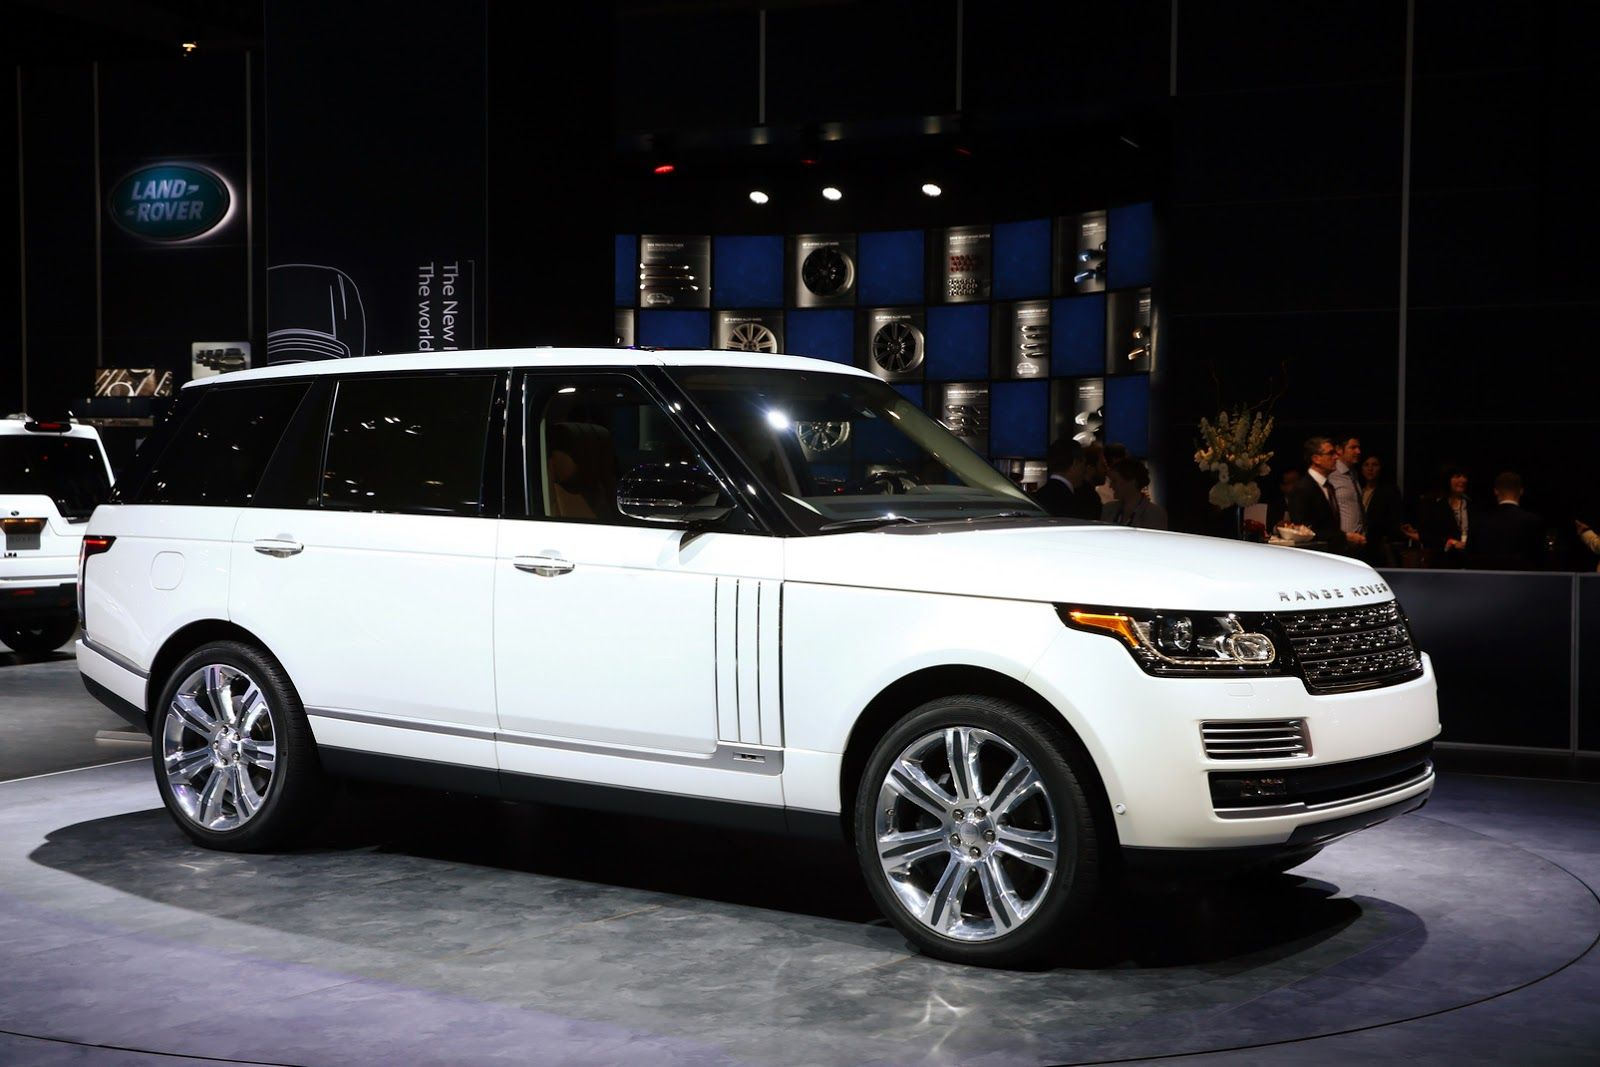 Category Range Rover >> 2016 Range Rover Svautobiography Debuts At The New York Auto Show